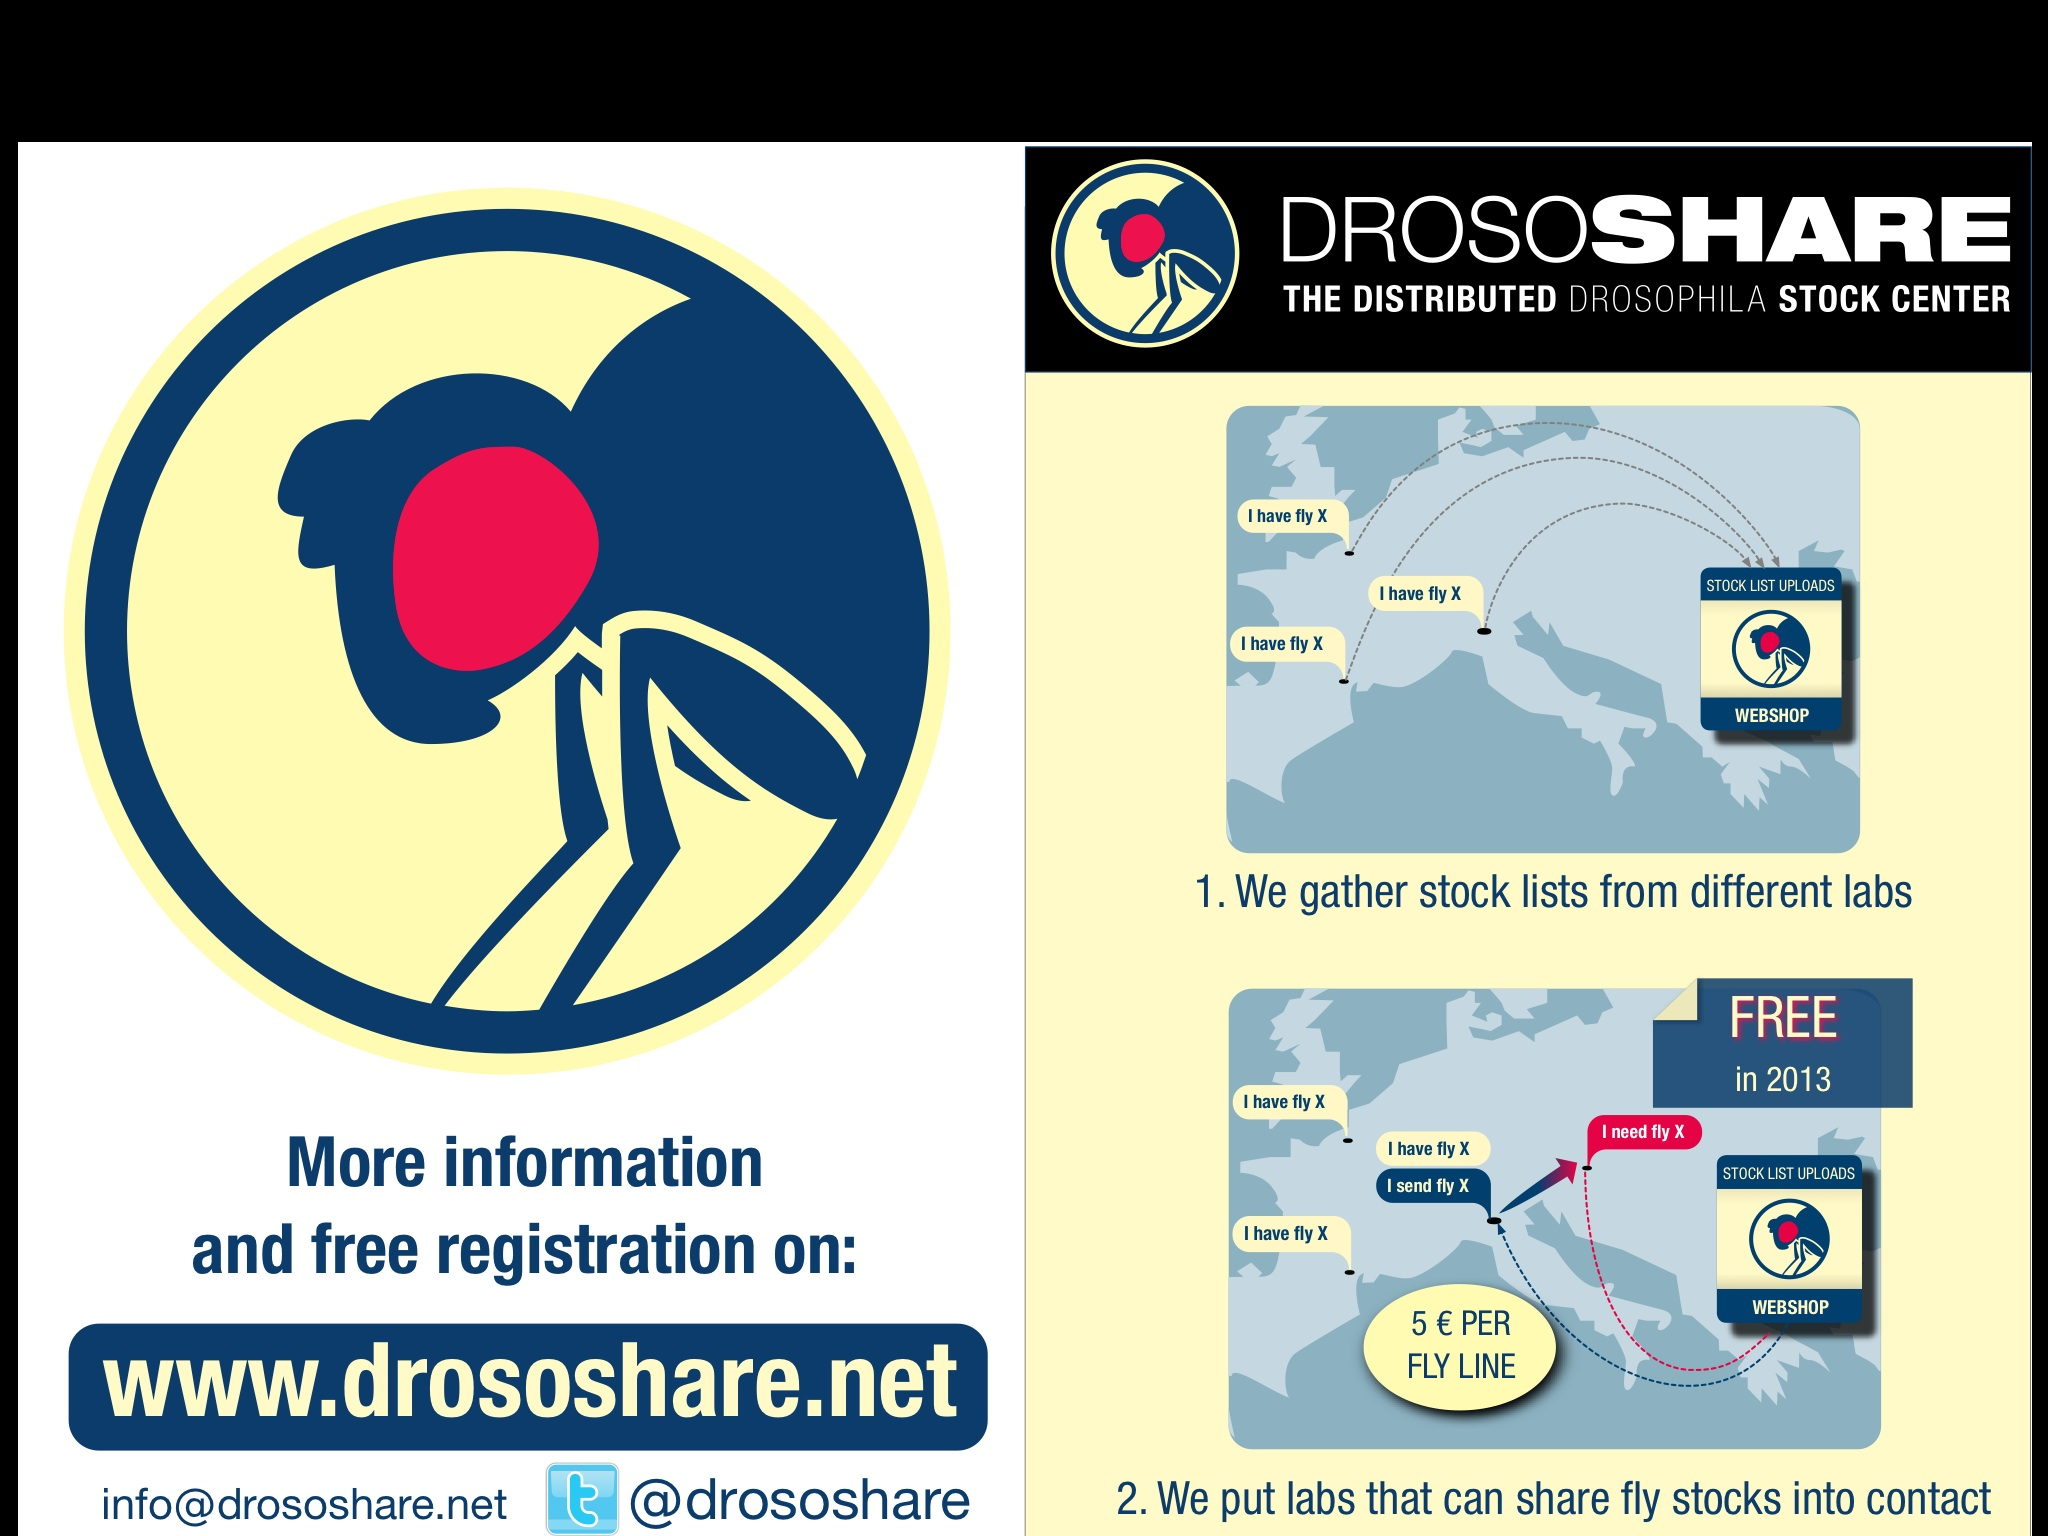 Drososhare (Source)